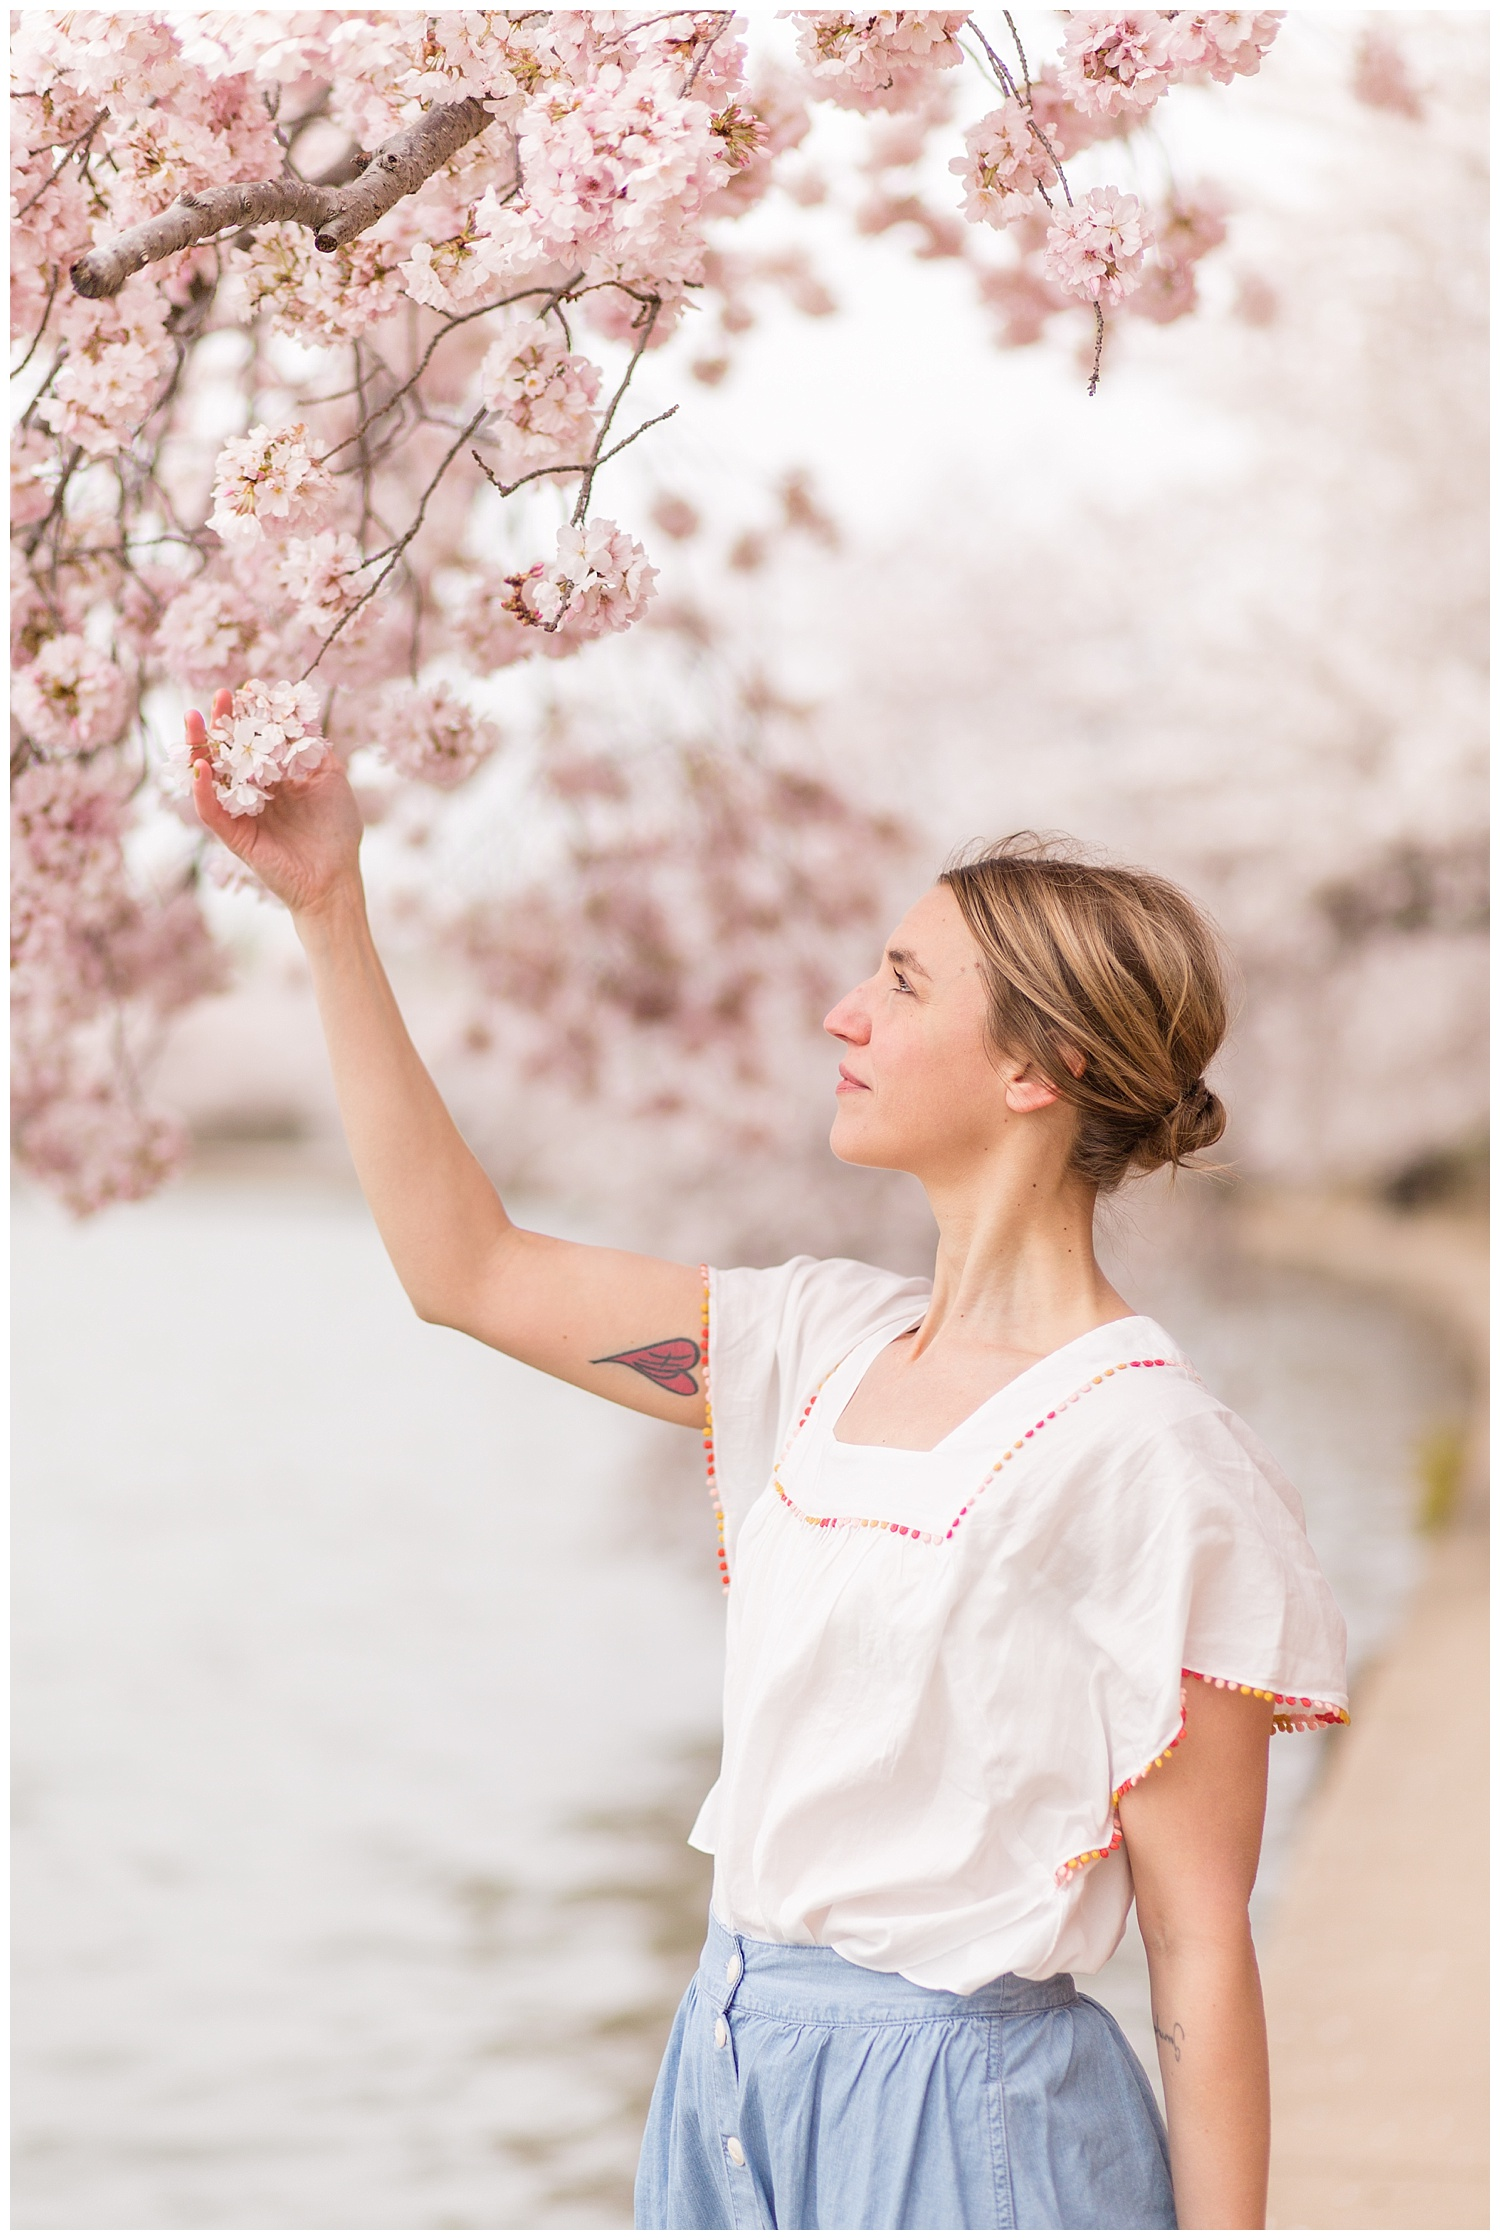 emily-belson-photography-cherry-blossom-dc-jessica-11.jpg